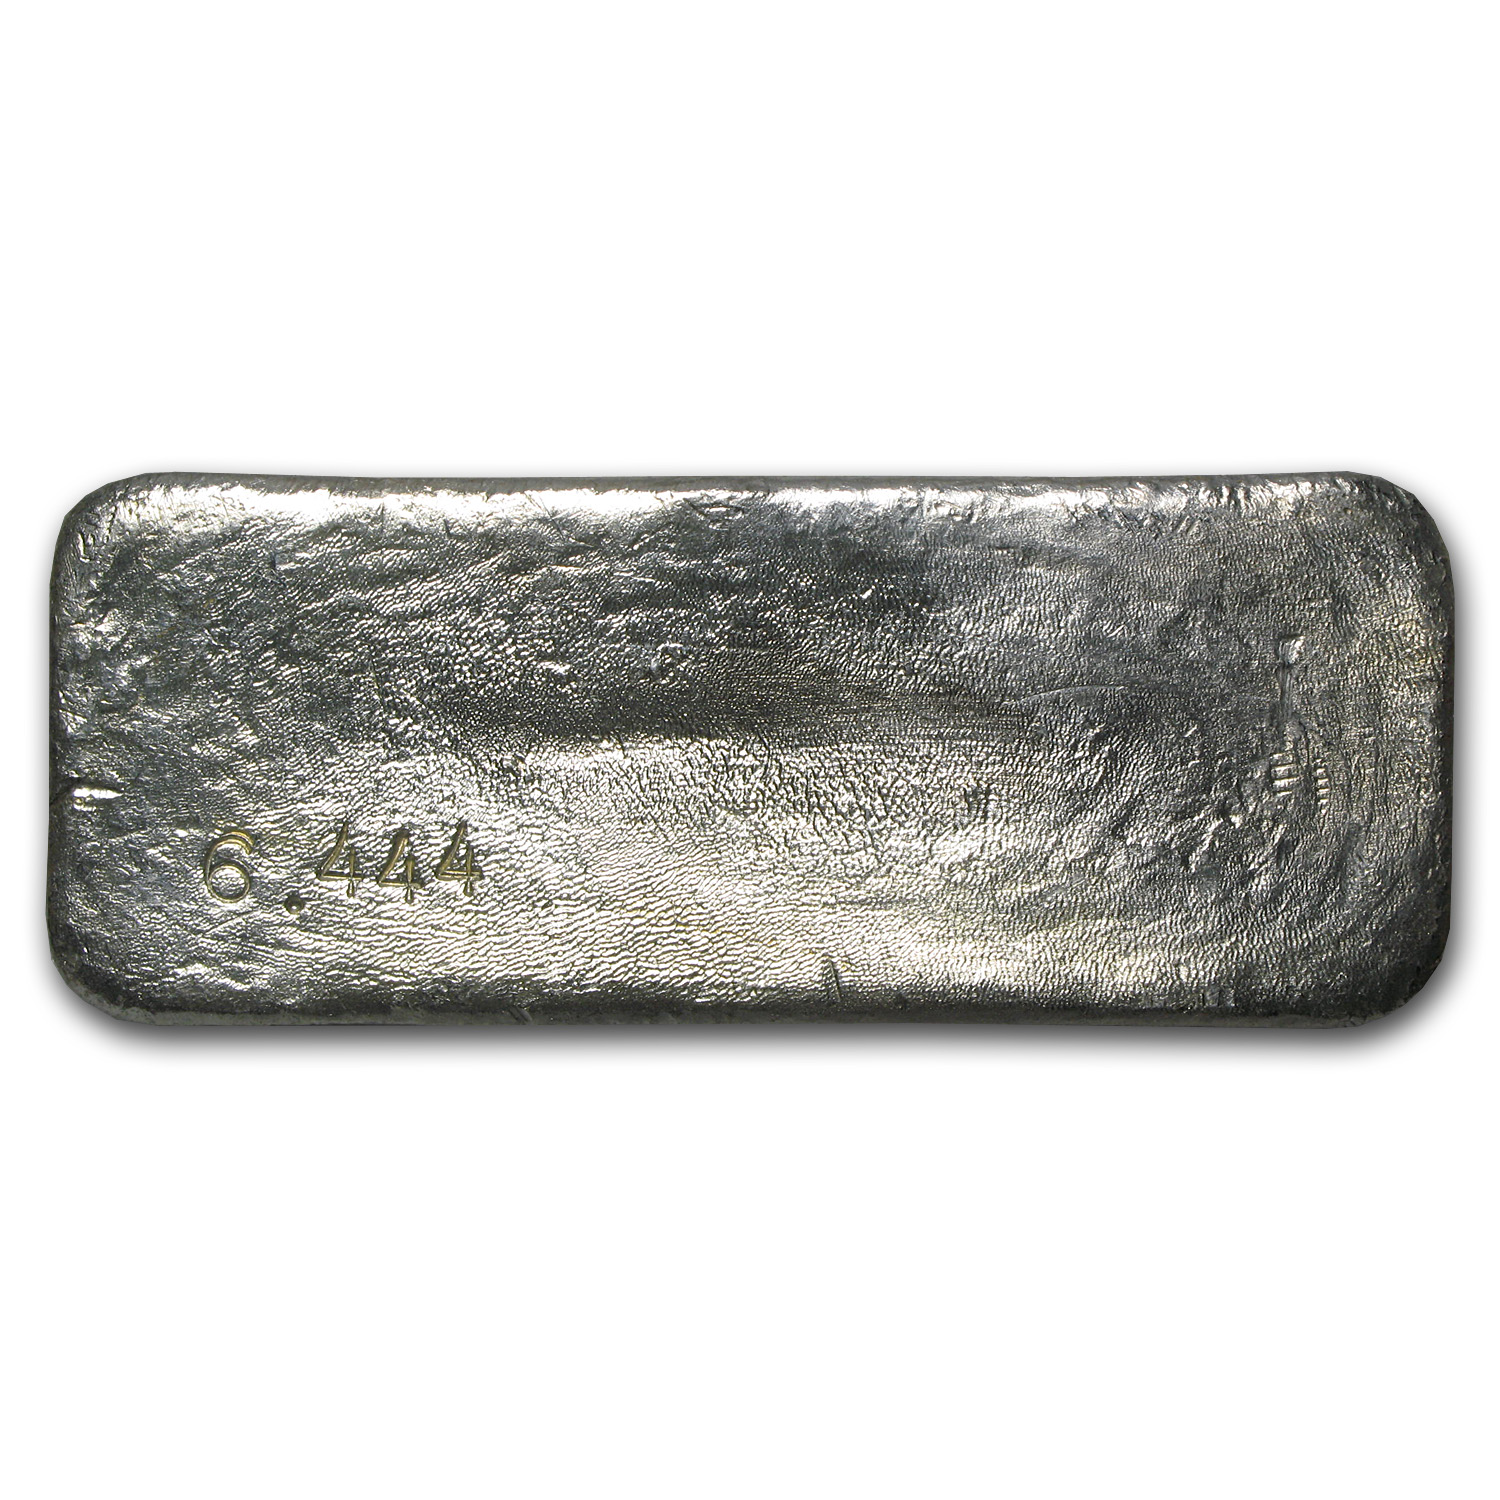 21.80 oz Silver Bar - Golden Analytical